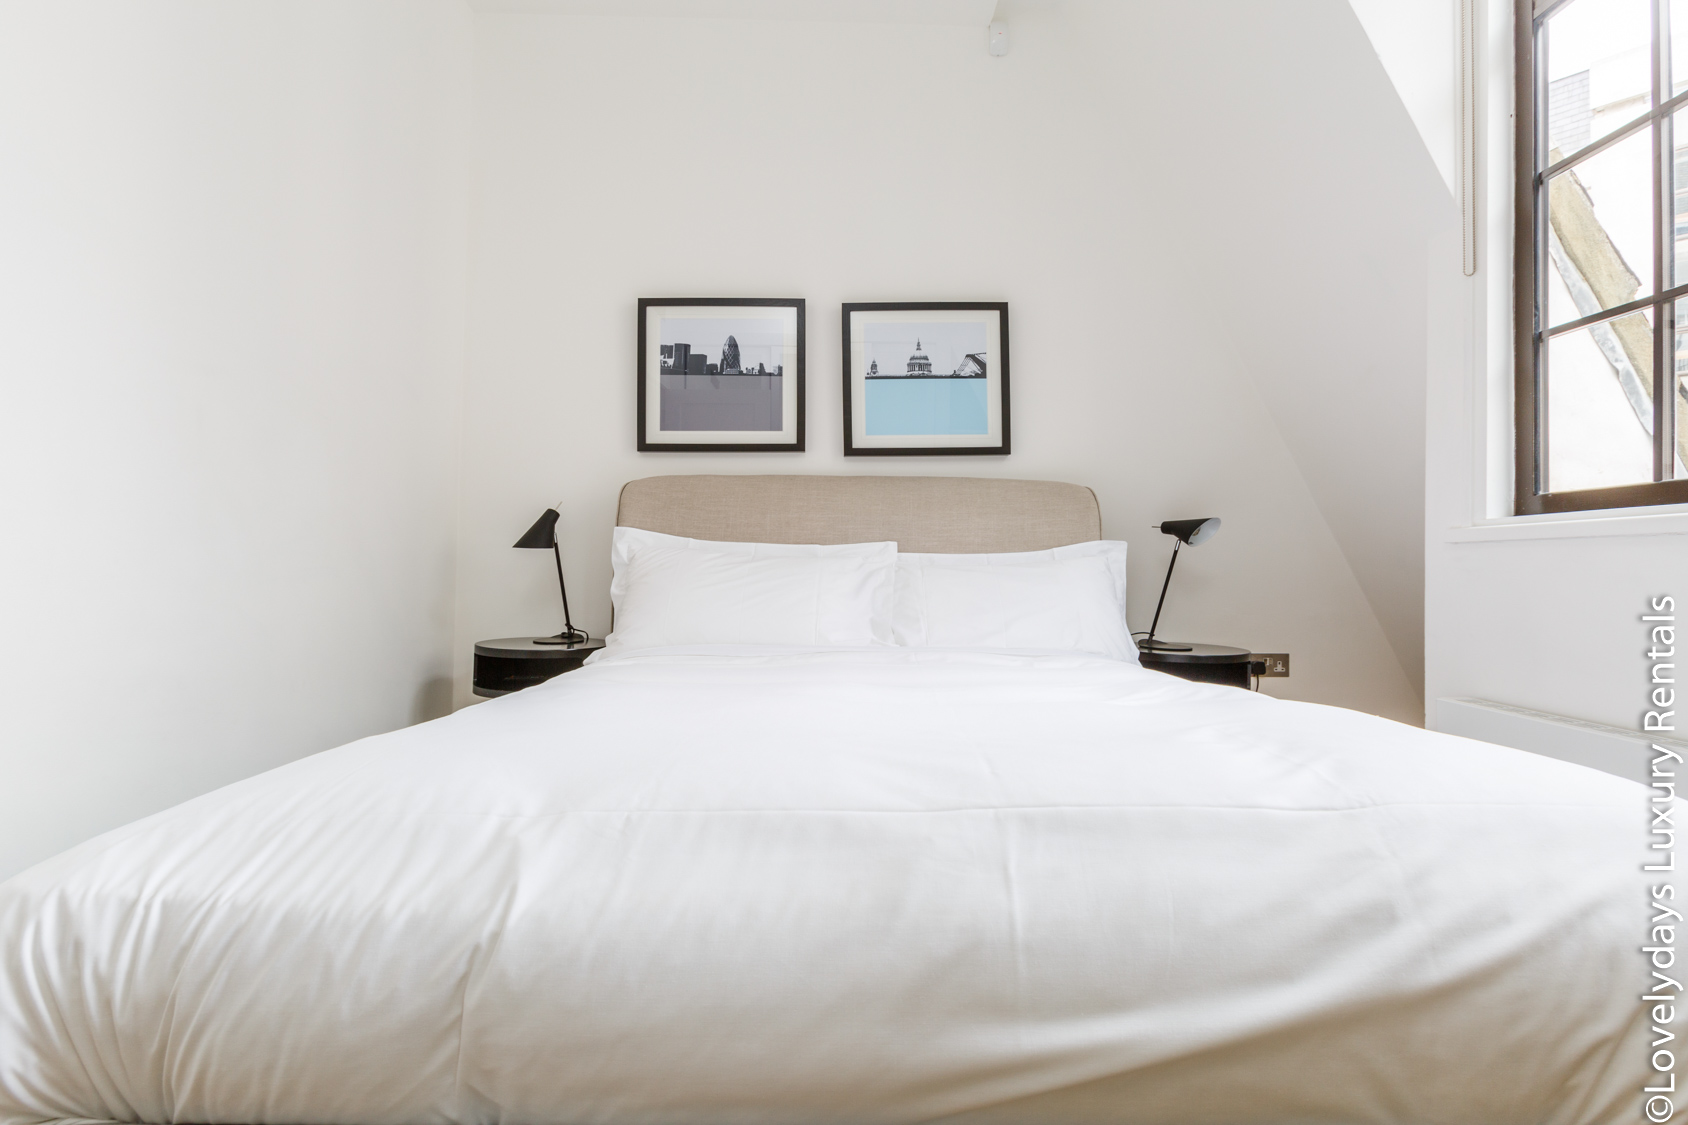 Lovelydays luxury service apartment rental - London - Covent Garden - Cockspur Street - Lovelysuite - 3 bedrooms - 2 bathrooms - Queen bed - 0d0781f1d411 - Lovelydays